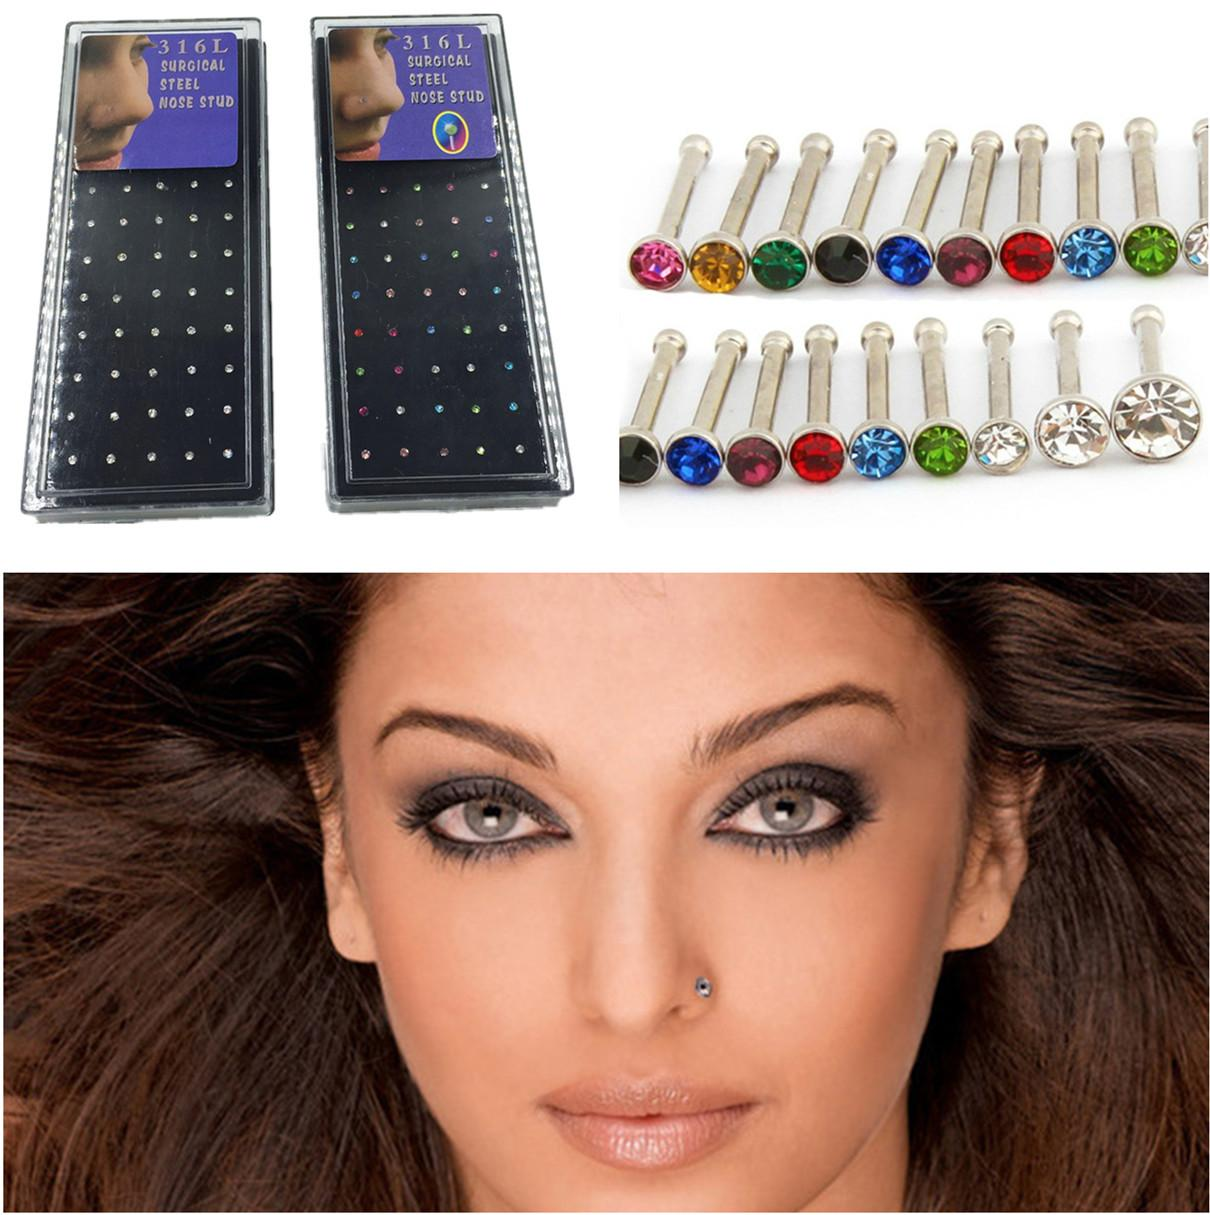 Diamond Stud Nose Rings For Sale